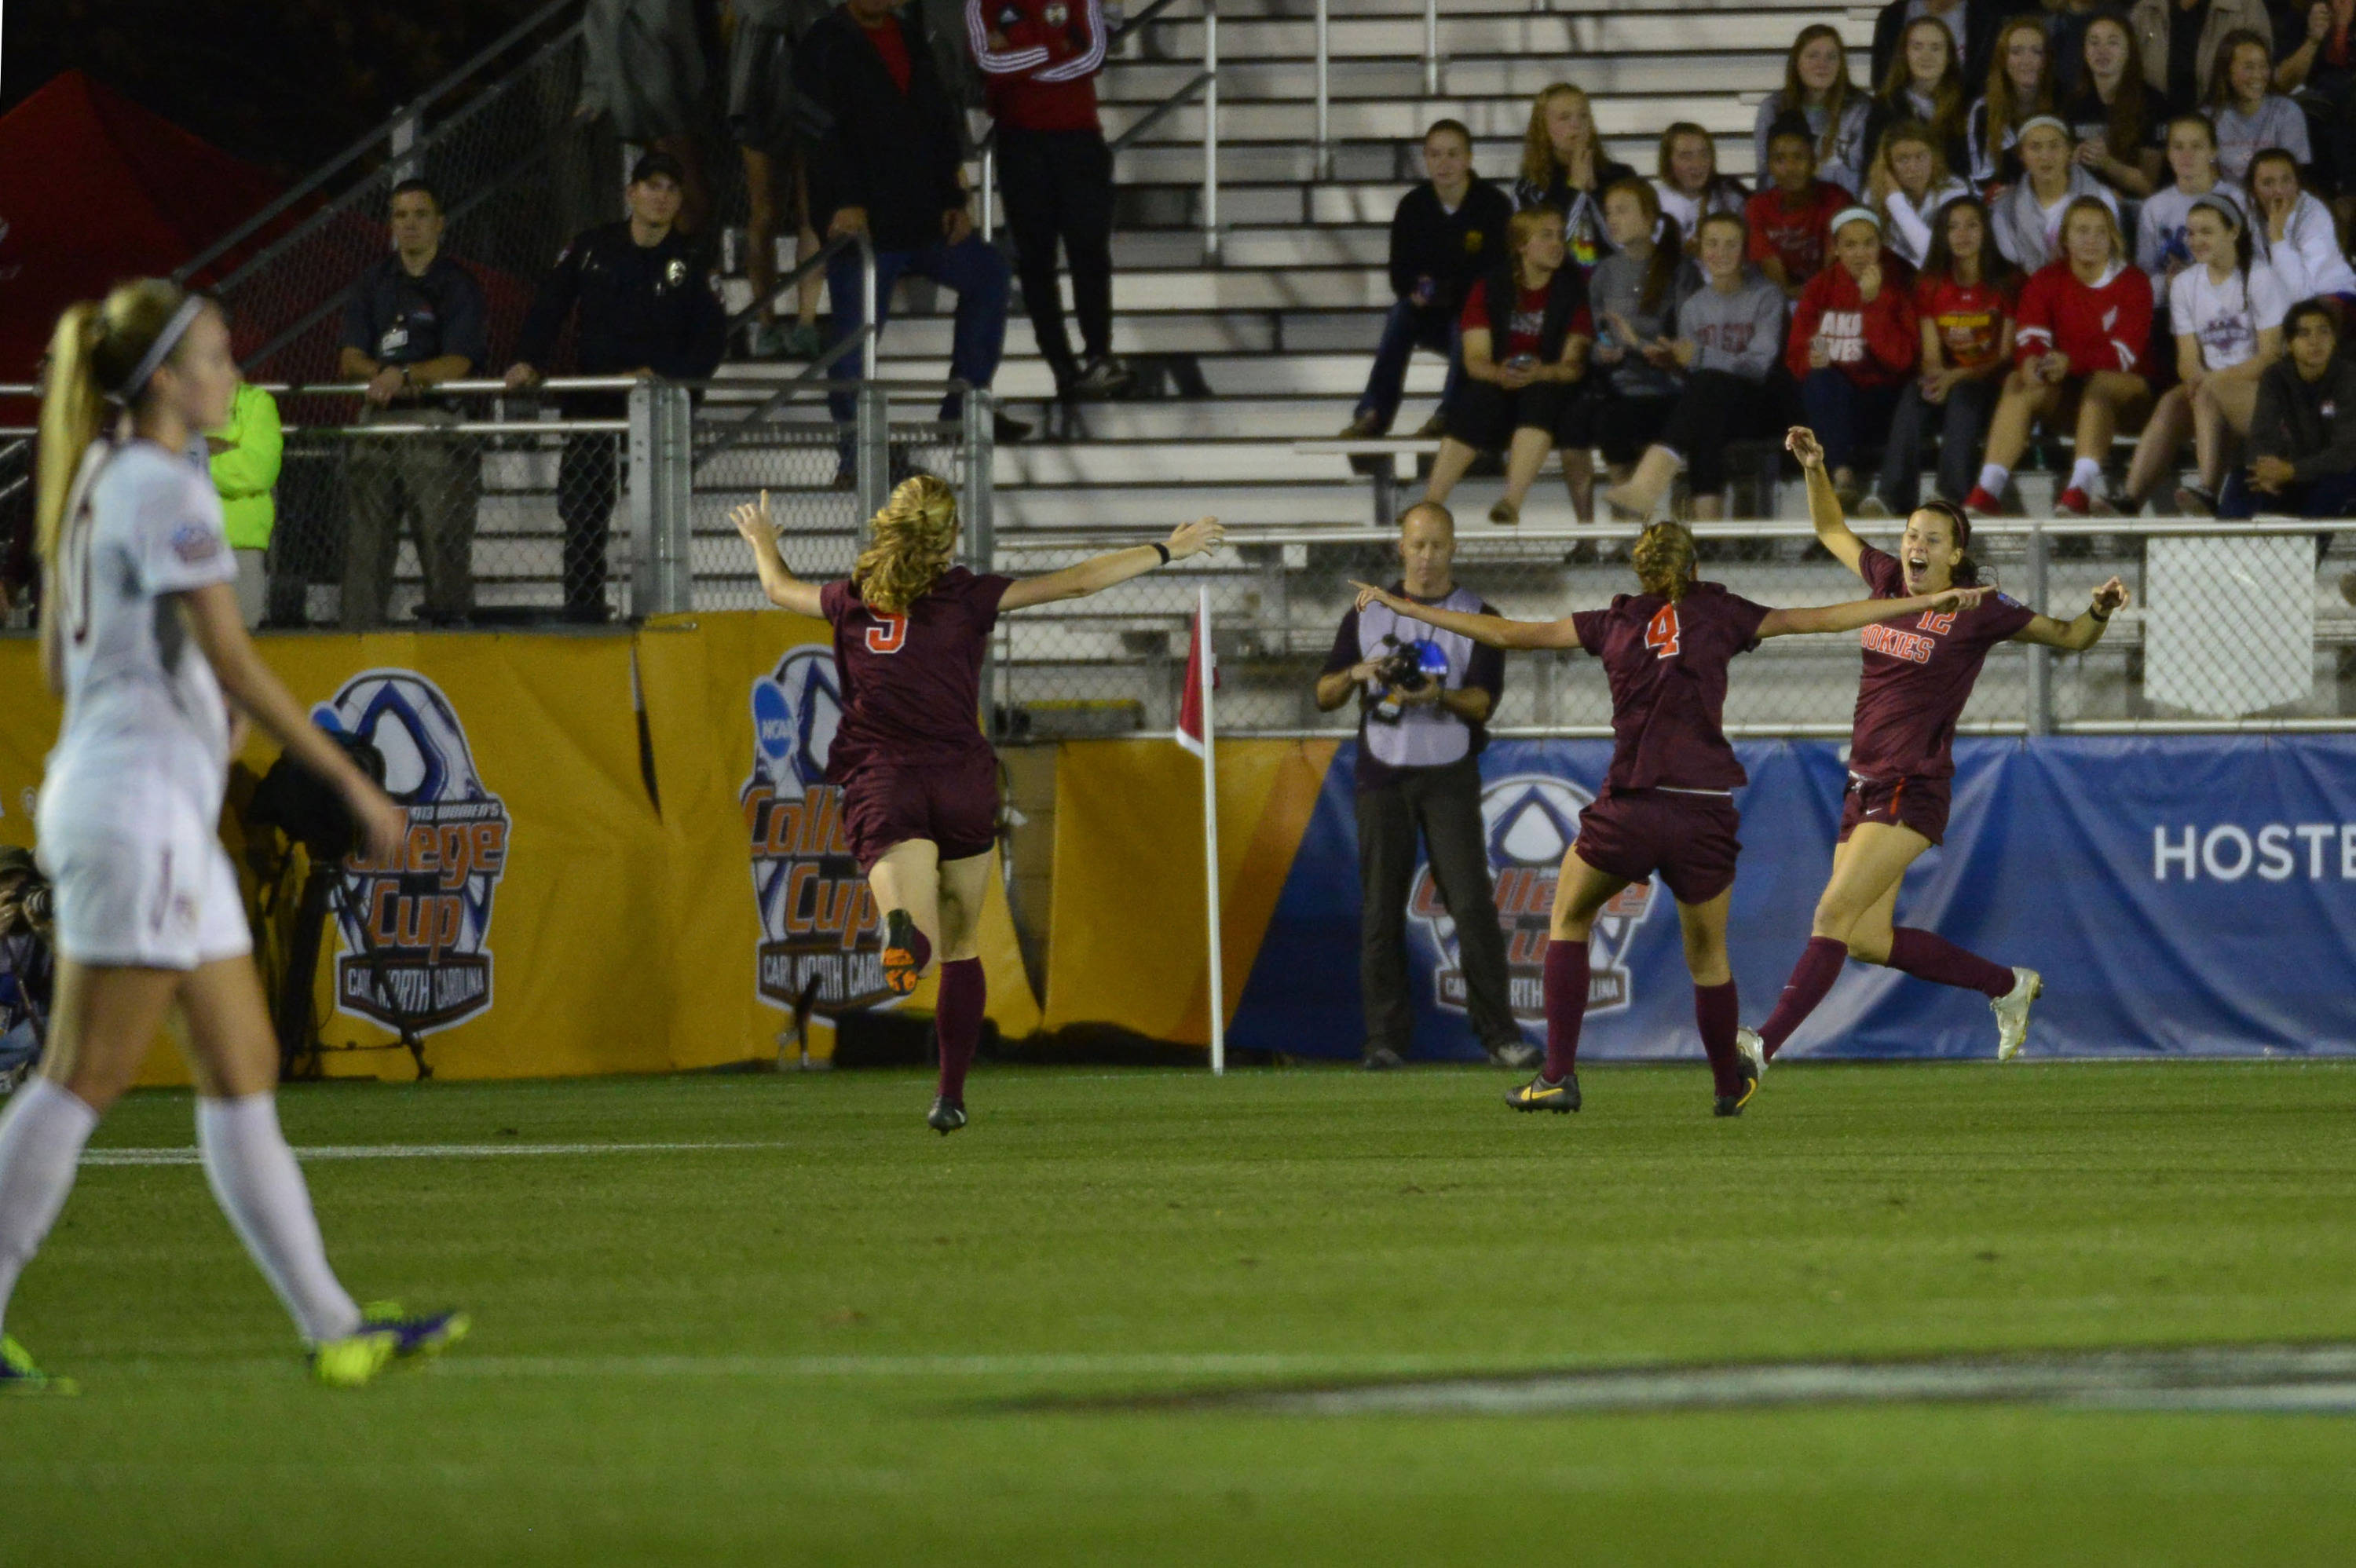 Dec 6, 2013; Cary, NC, USA; Virginia Tech Hokies forward Ashley Manning (12) celebrates with midfielder Kelsey Loupee (9) and forward Shannon Mayrose (4) after scoring a goal as Florida State Seminoles forward Berglind Thorvaldsdottir (10) is in the foreground in the first half at WakeMed Soccer Park. Mandatory Credit: Bob Donnan-USA TODAY Sports